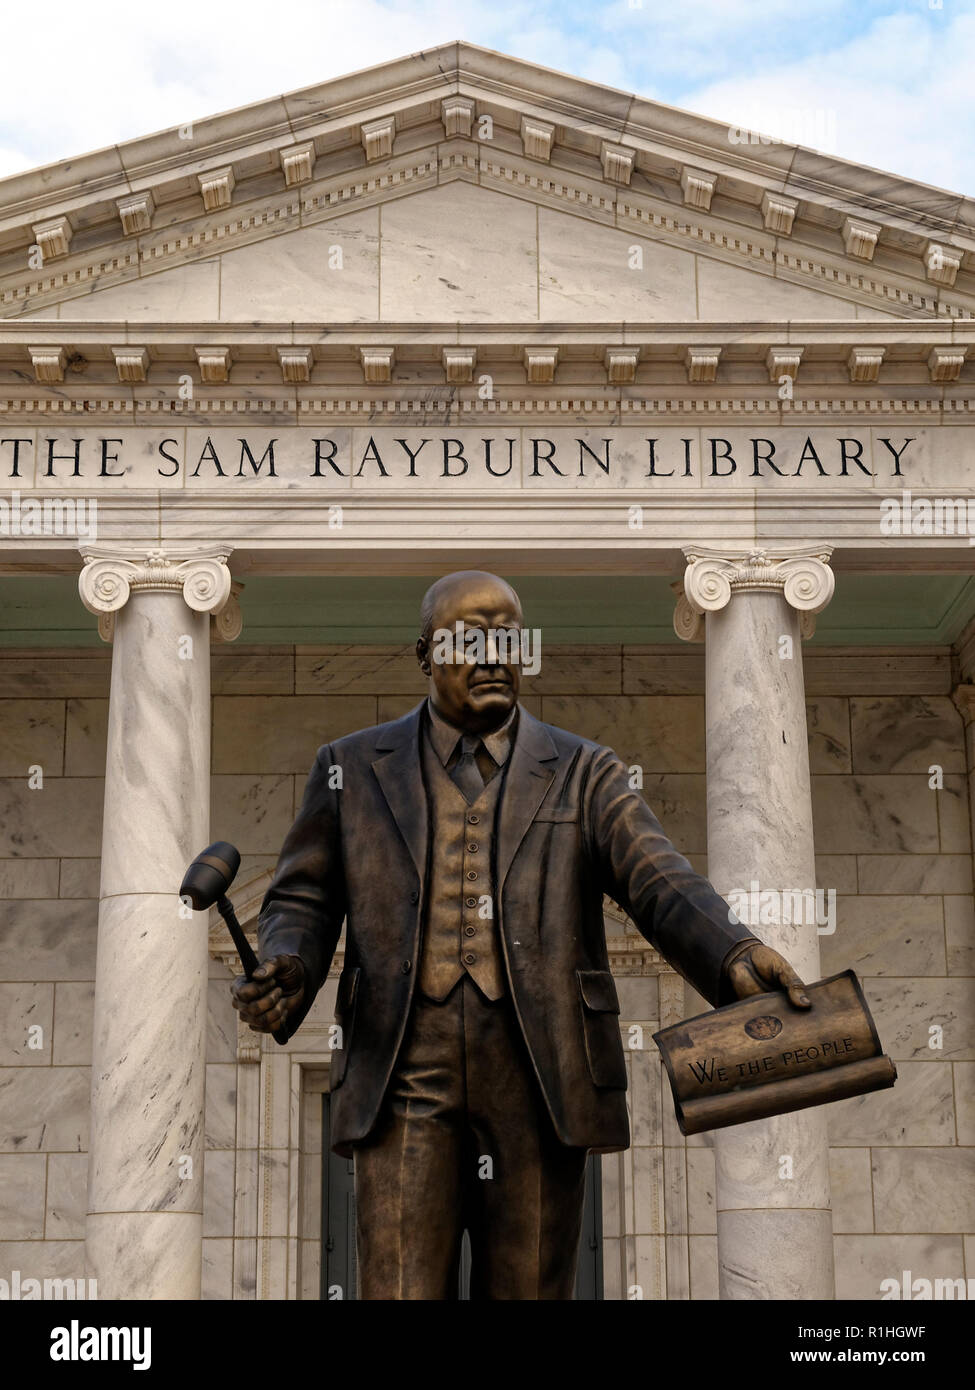 A statue of Speaker Sam Rayburn looms infront of his memorial in Bonham, Texas. He guided the most important legislation in the 20th century through Congress. - Stock Image